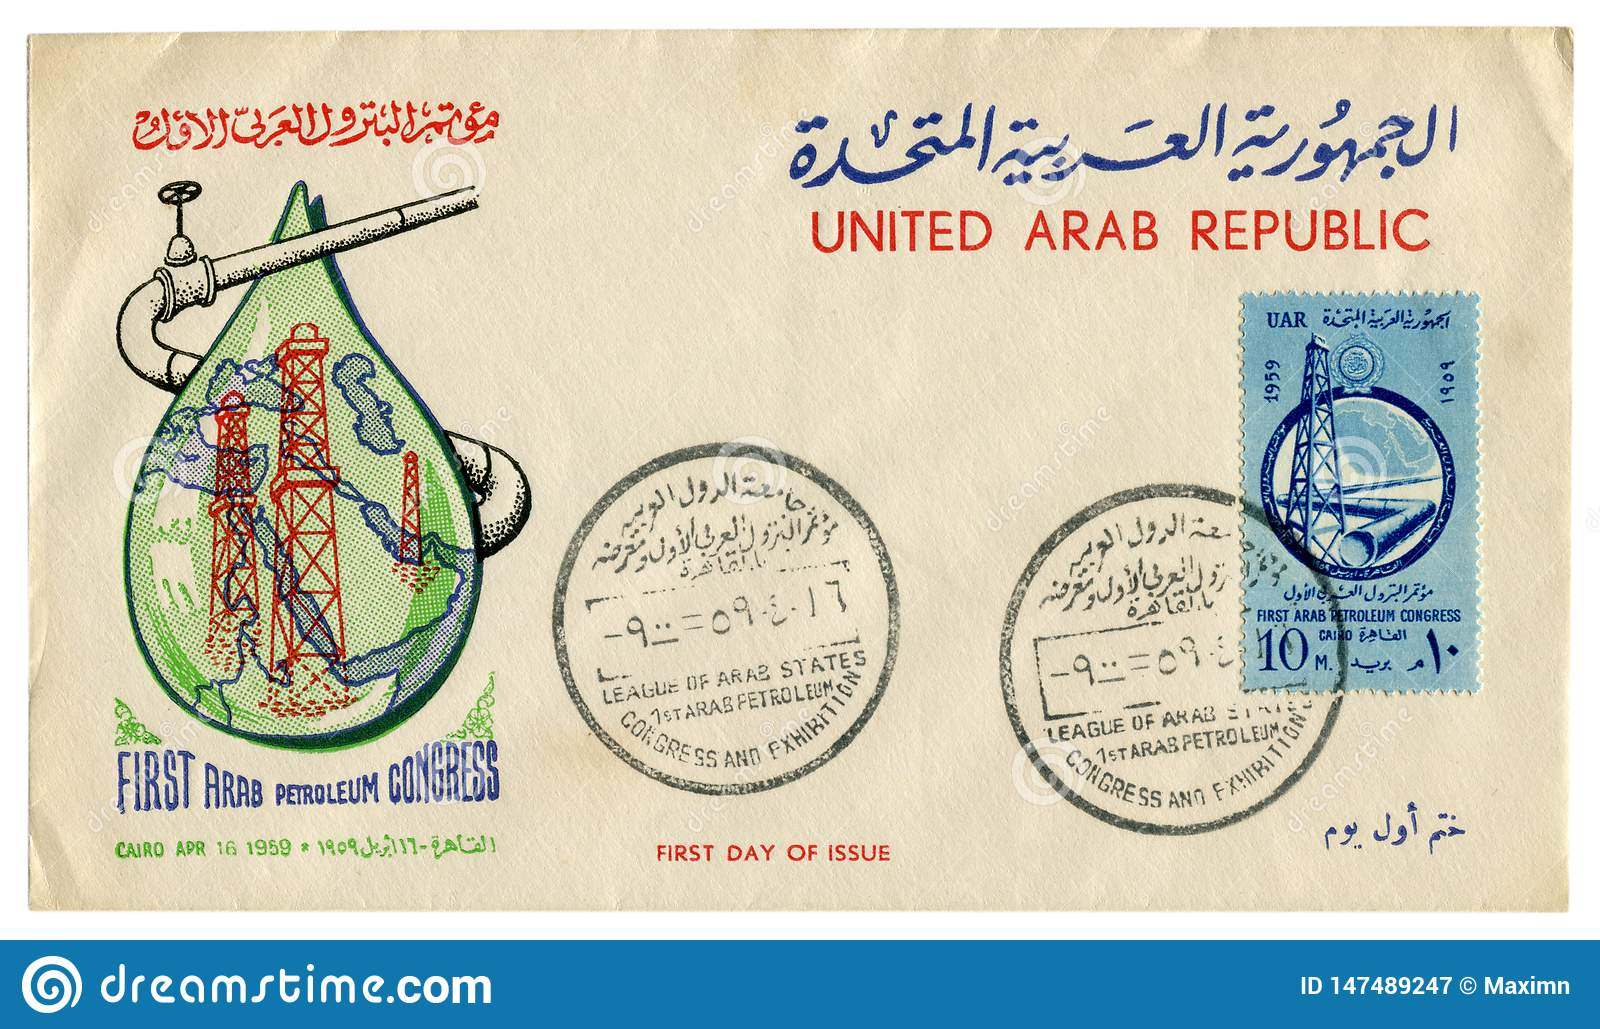 Cairo, Egypt, United Arab Republic - 16 April 1959: Egyptian historical envelope: cover with cachet First Arab Petroleum Congress.